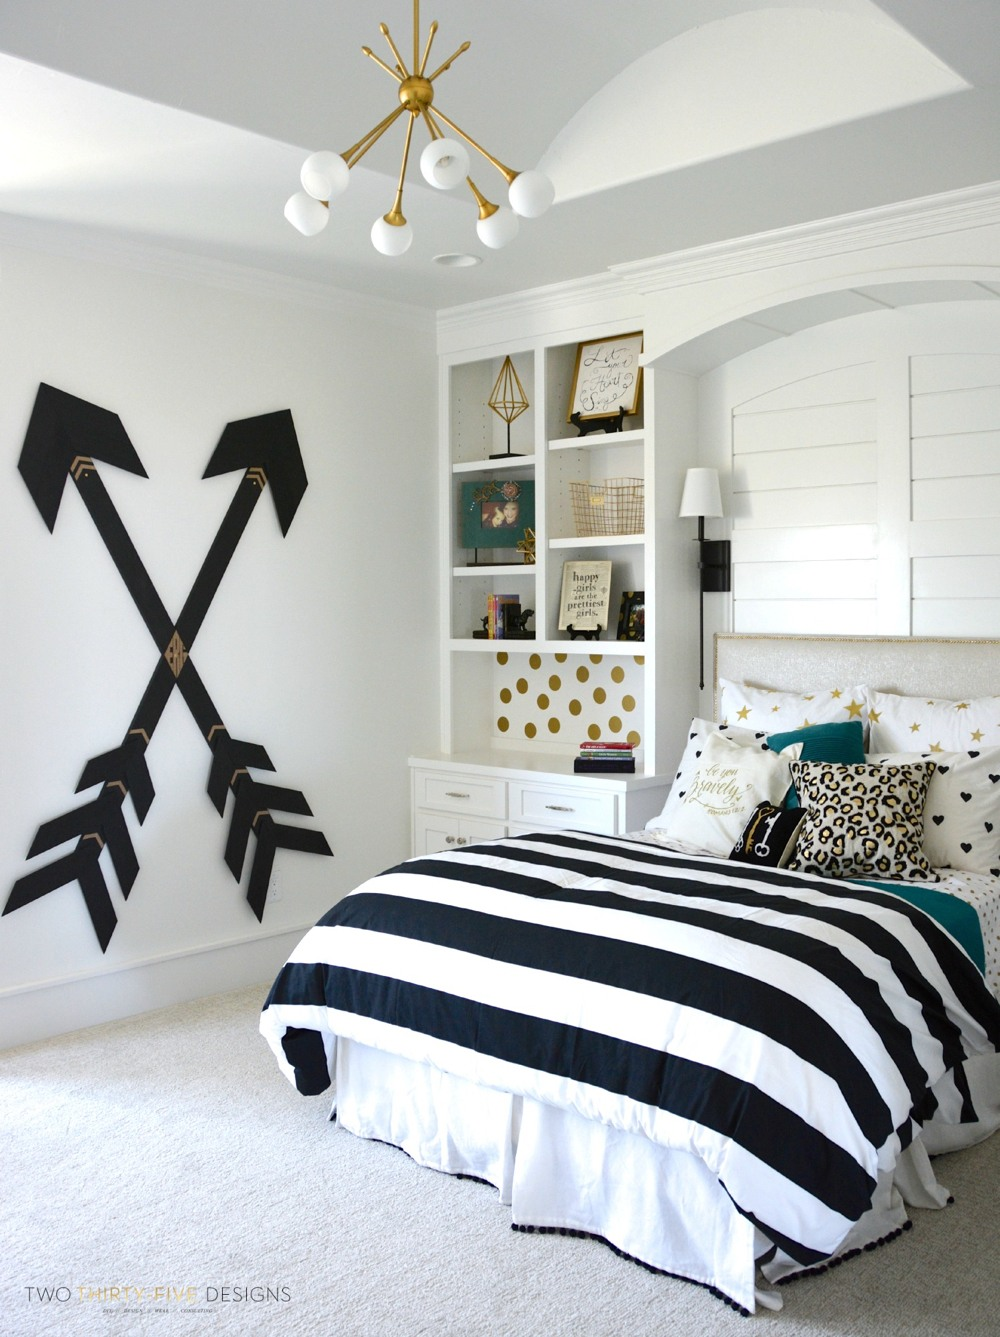 Best 23 Stylish T**N Girl's Bedroom Ideas Homelovr This Month